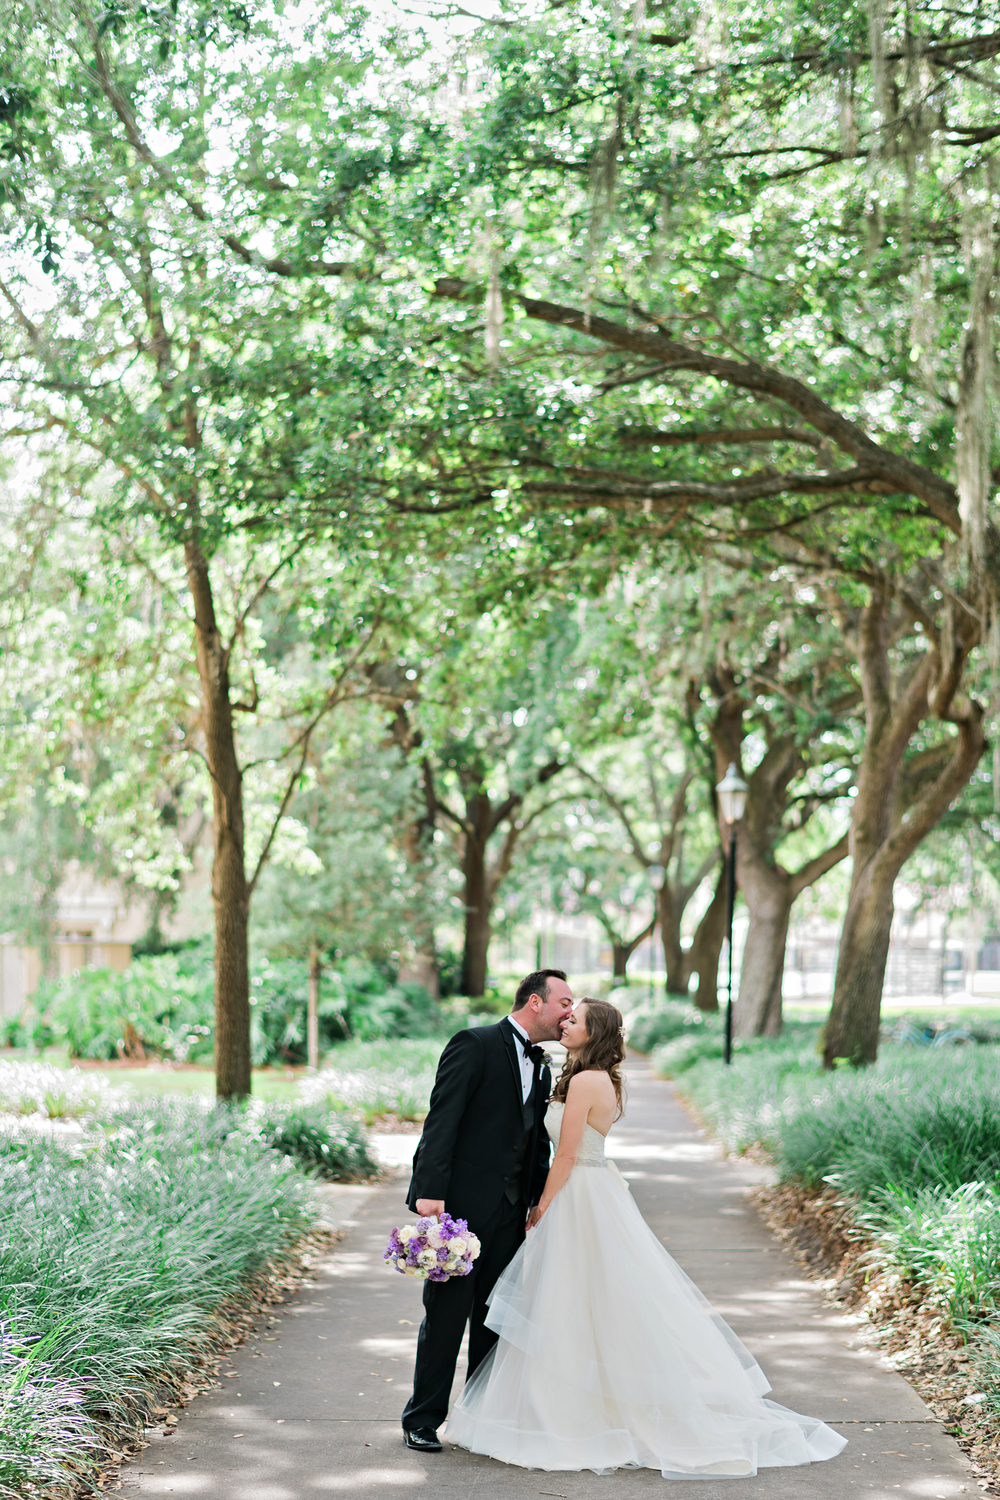 kristenweaver.com | Weddings at The Alfond Inn in Winter Park Florida | Kristen Weaver Photography | Florida Wedding Photographer